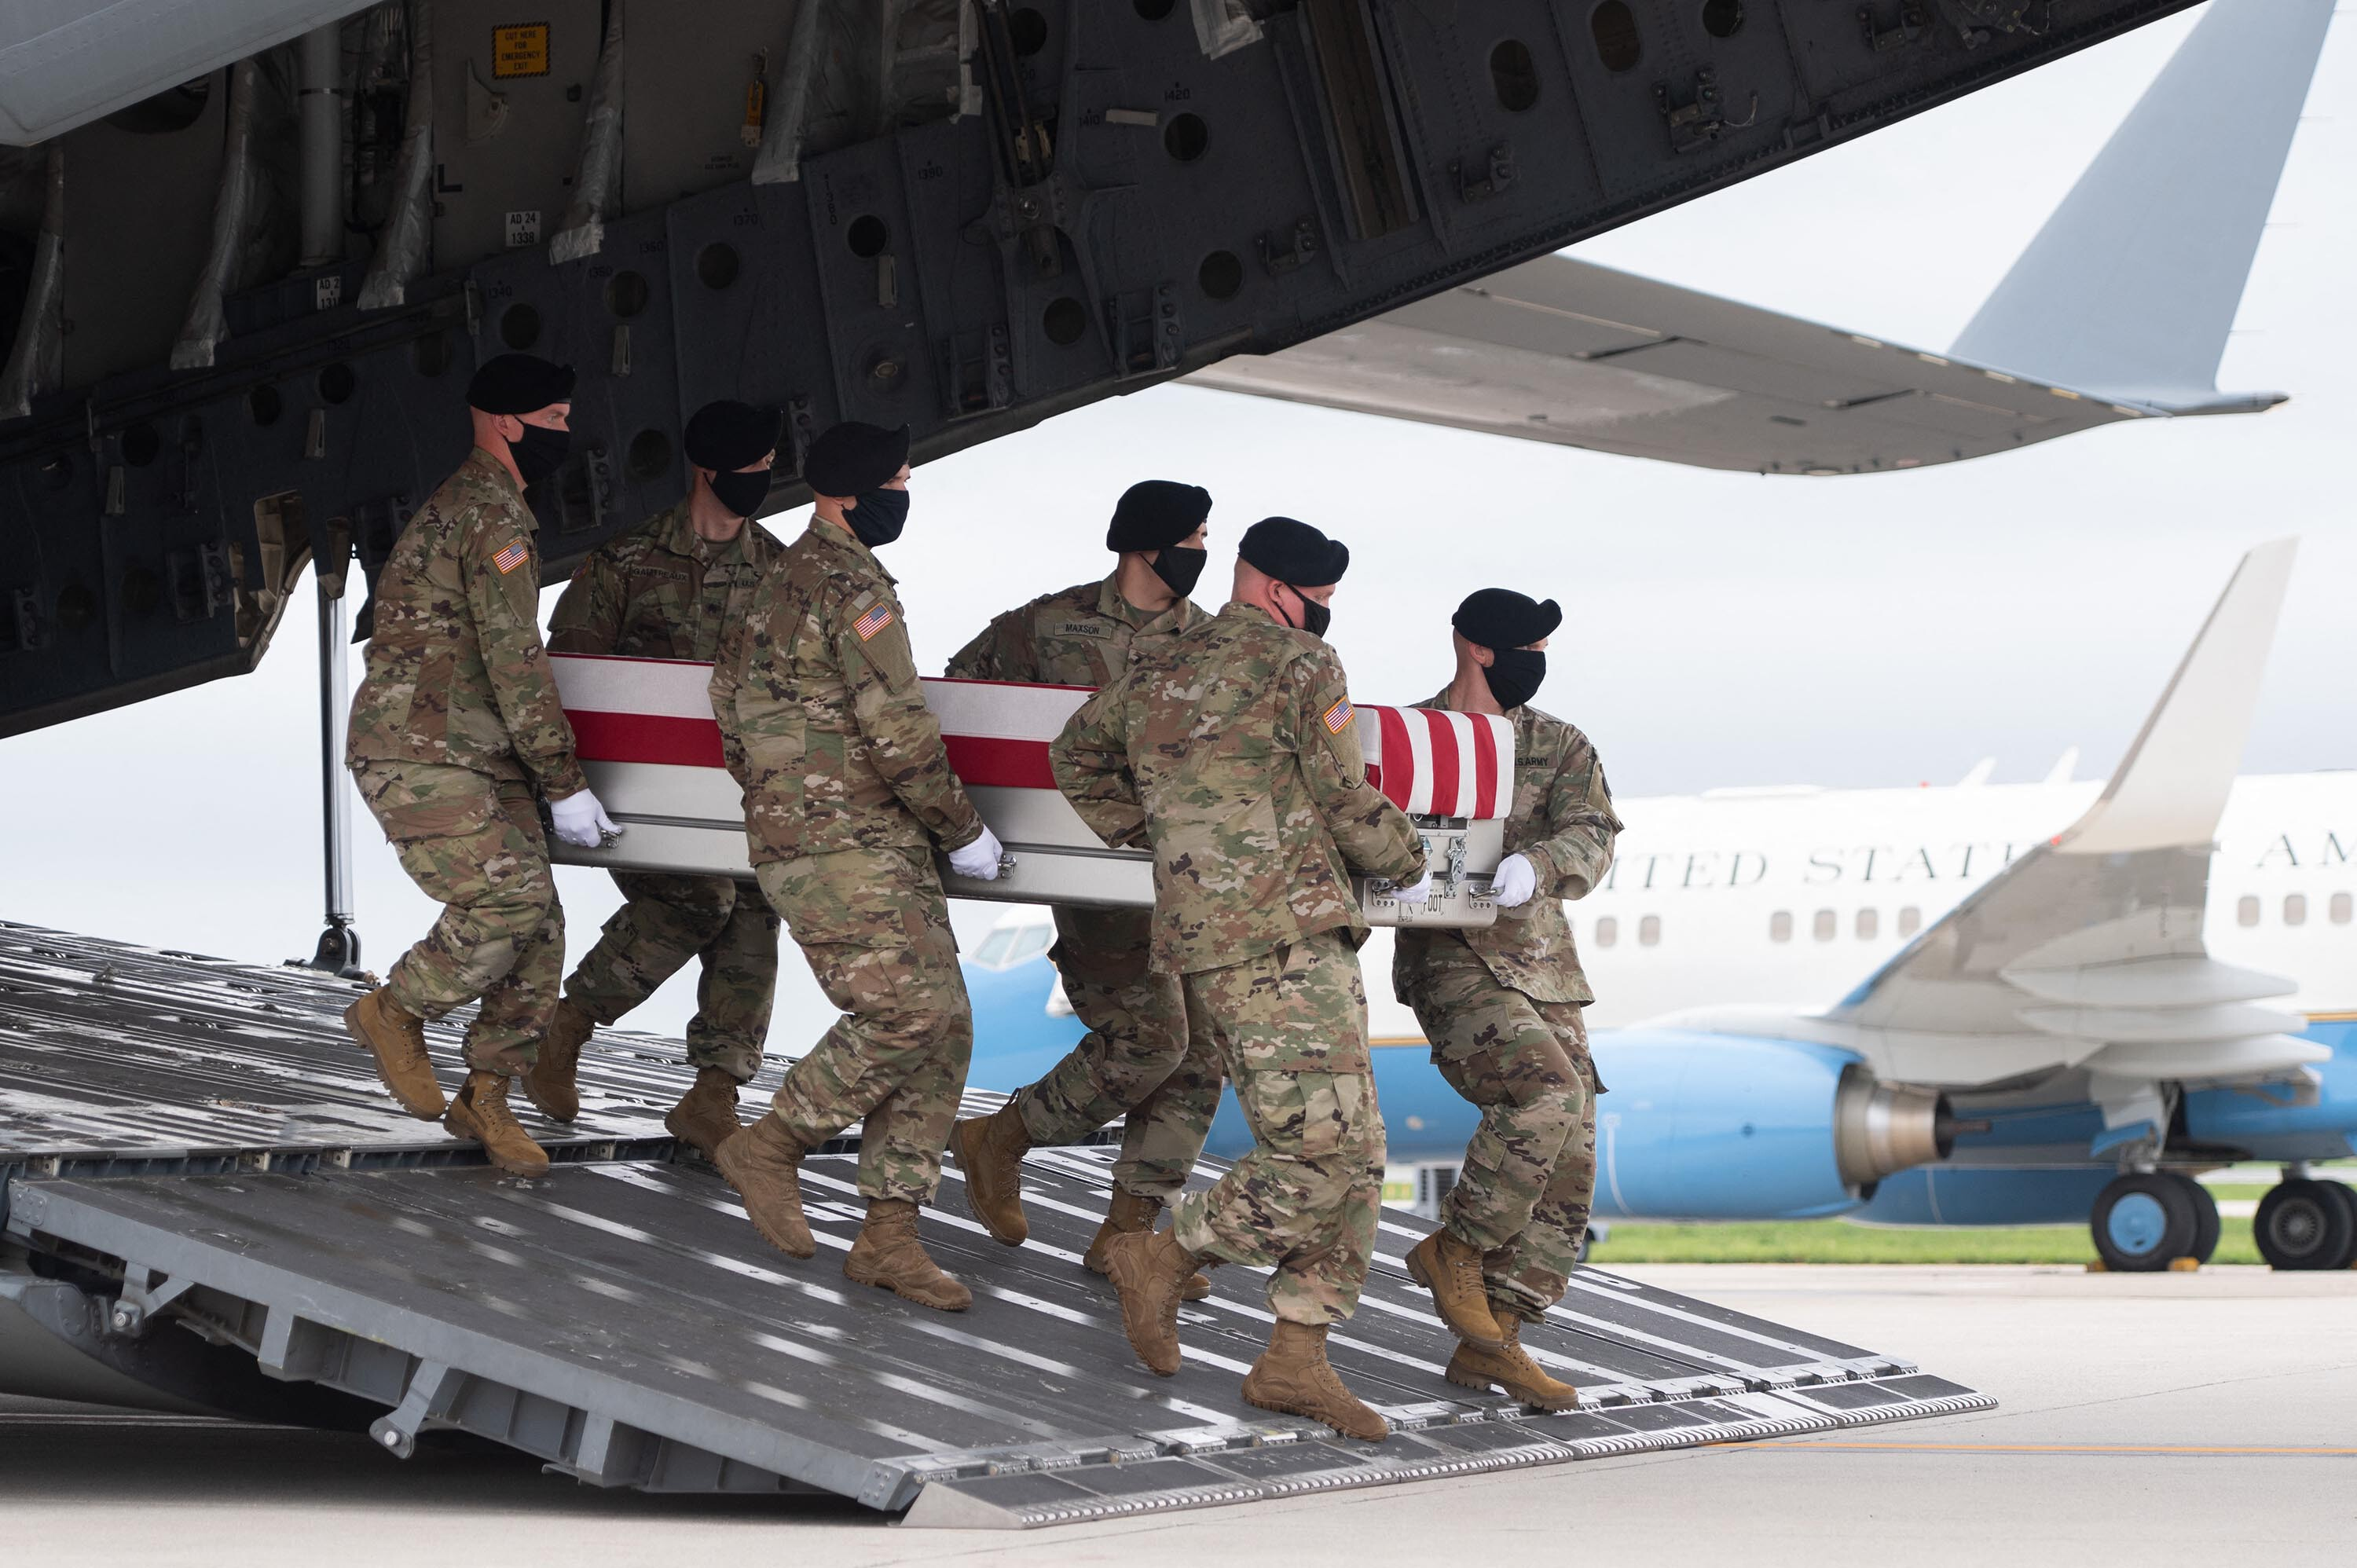 House votes to posthumously award the Congressional Gold Medal to 13 US service members killed in Kabul airport bombing